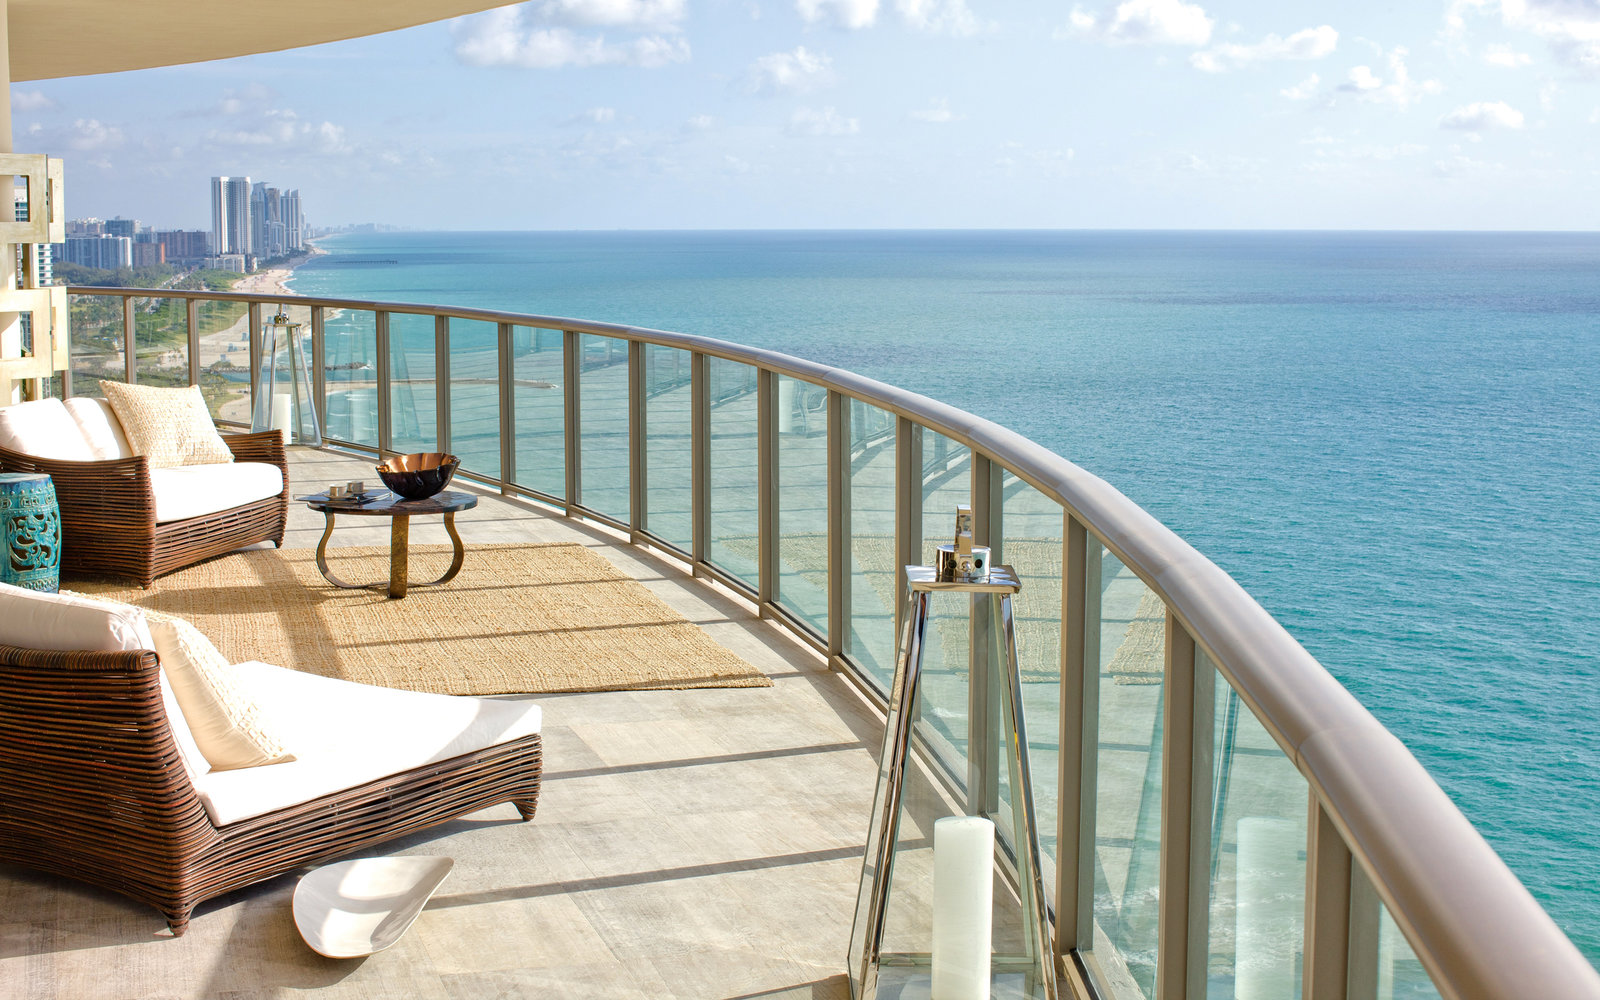 The St. Regis Bal Harbour Resort, Miami Beach, Florida